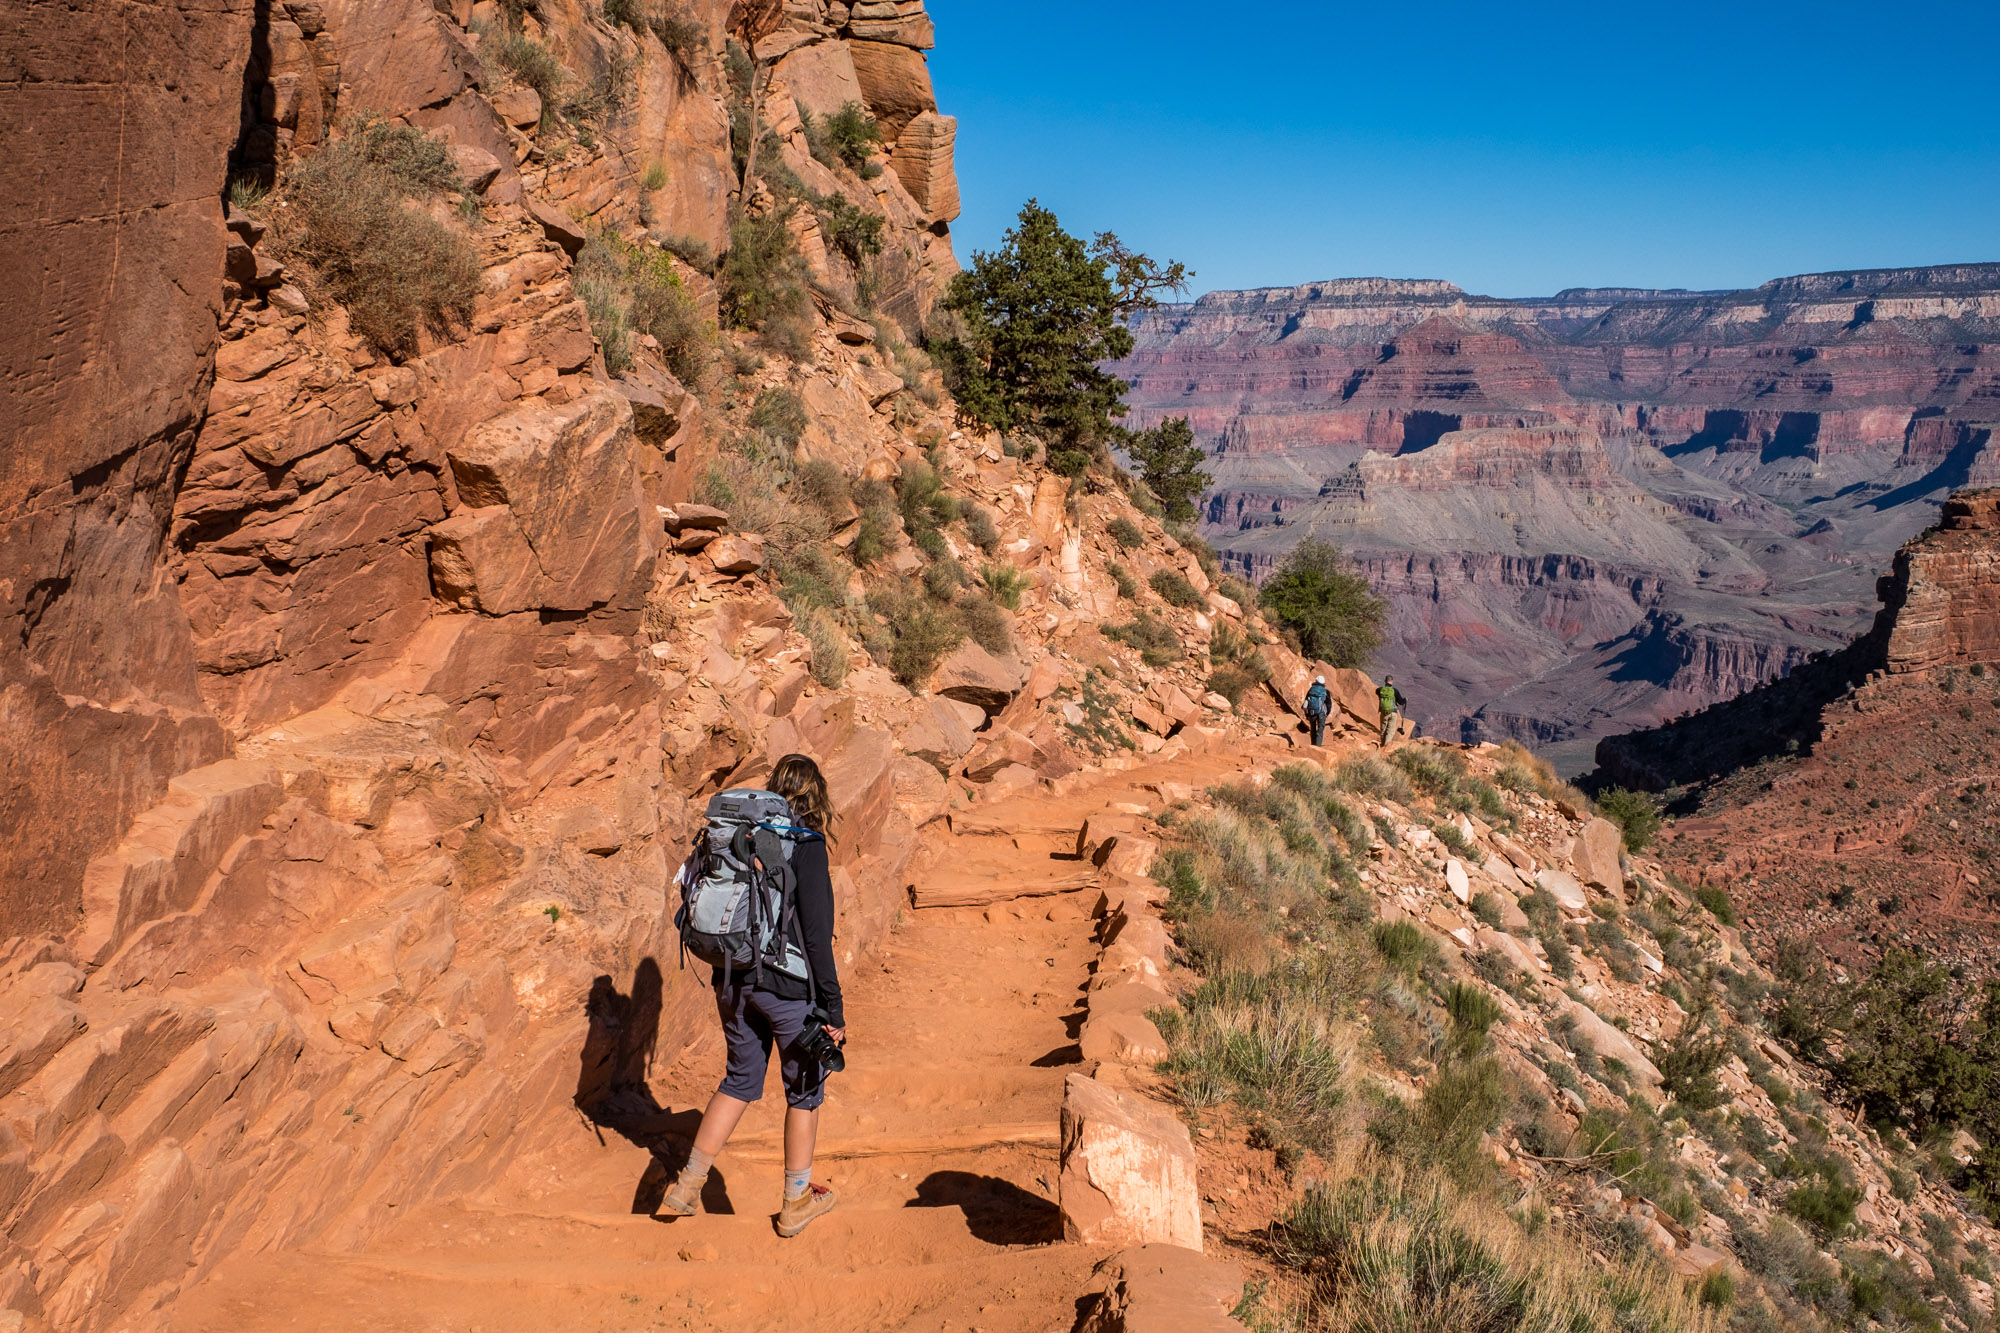 Stef heads down the South Kaibab trail in search of the canyons deepest, darkest secrets...